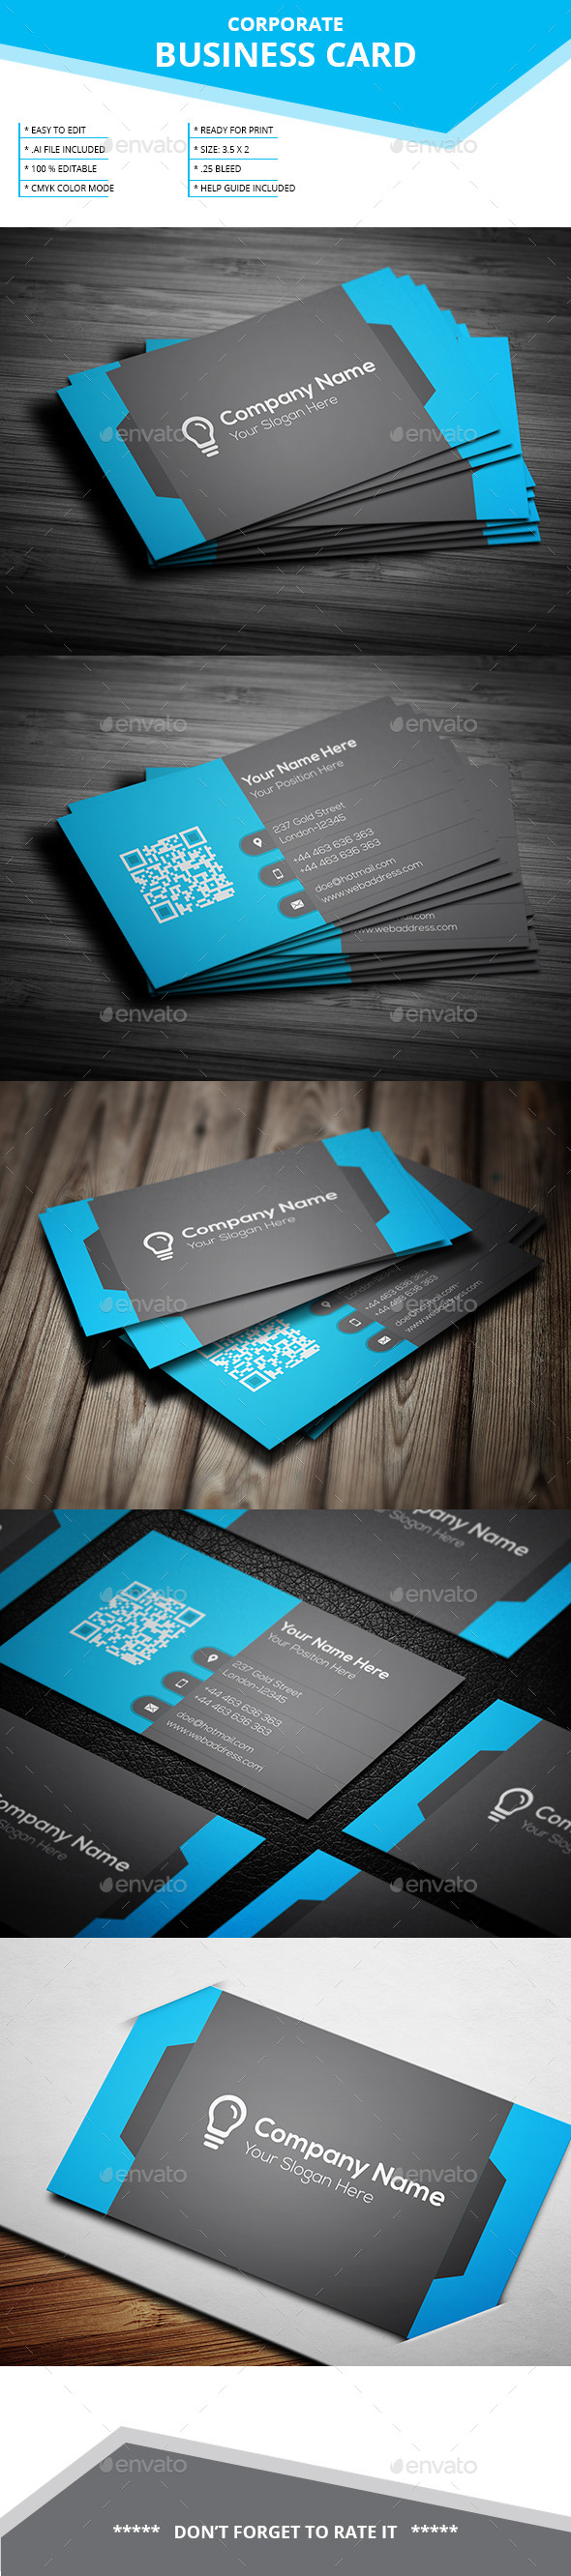 GraphicRiver Corporate Business Card 11963697